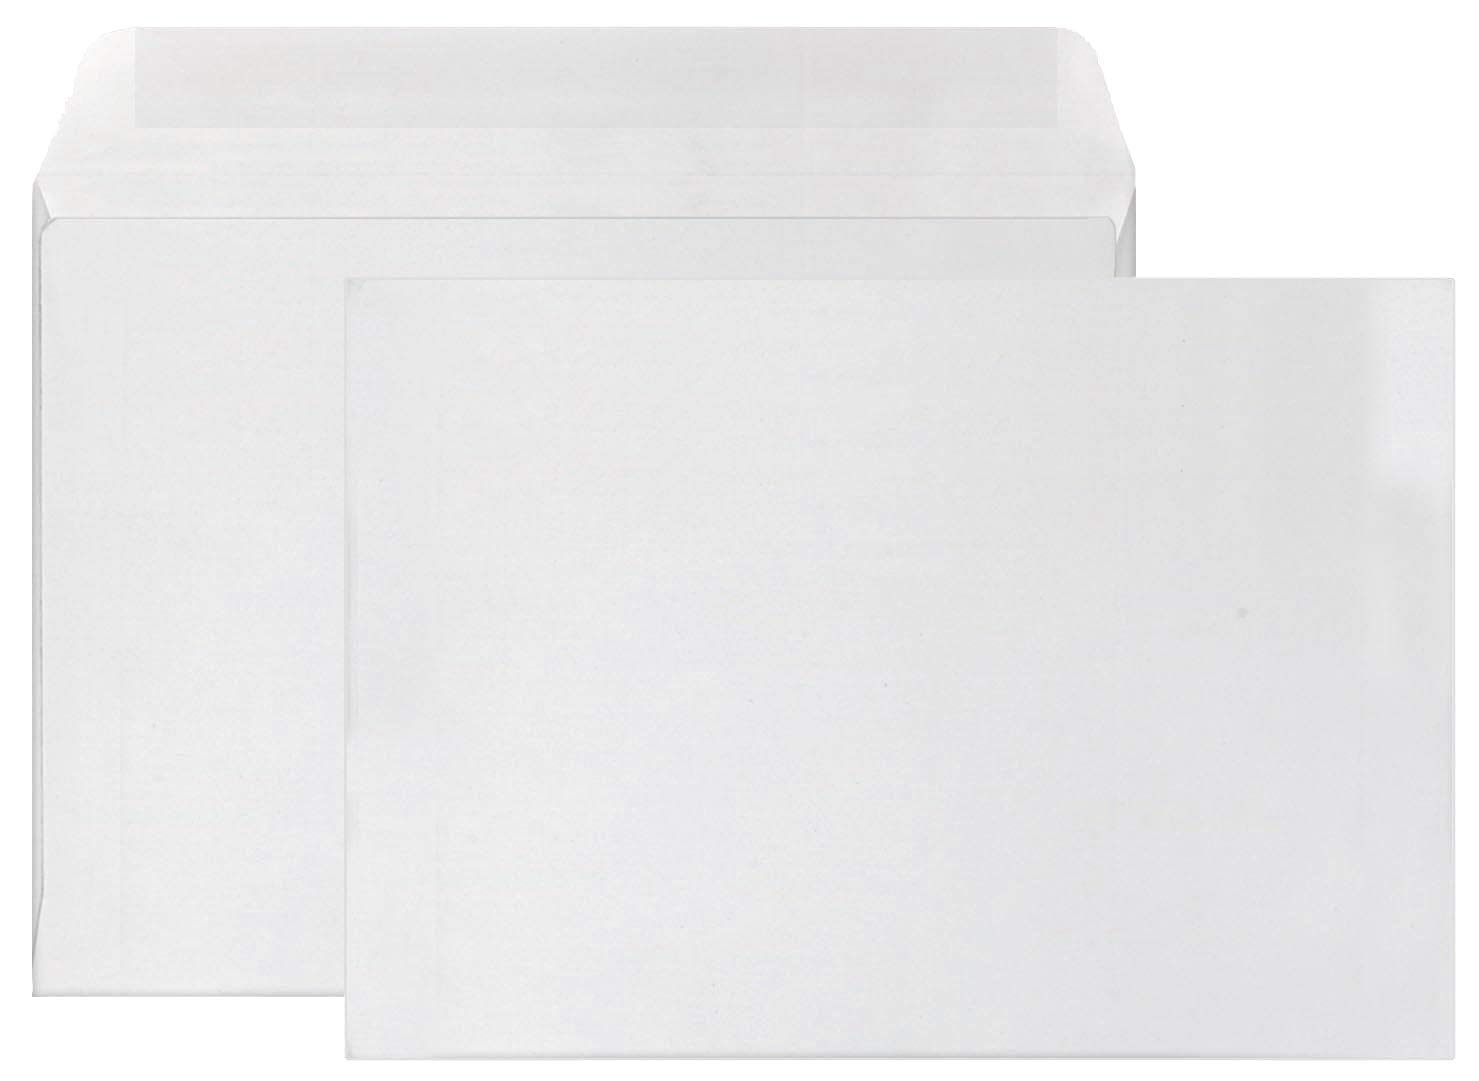 Limited Papers (TM) 9 x 12 Booklet Envelope - Open Side - 28# White - (9 x 12) - Large Envelope Series (Jumbo) (2500)